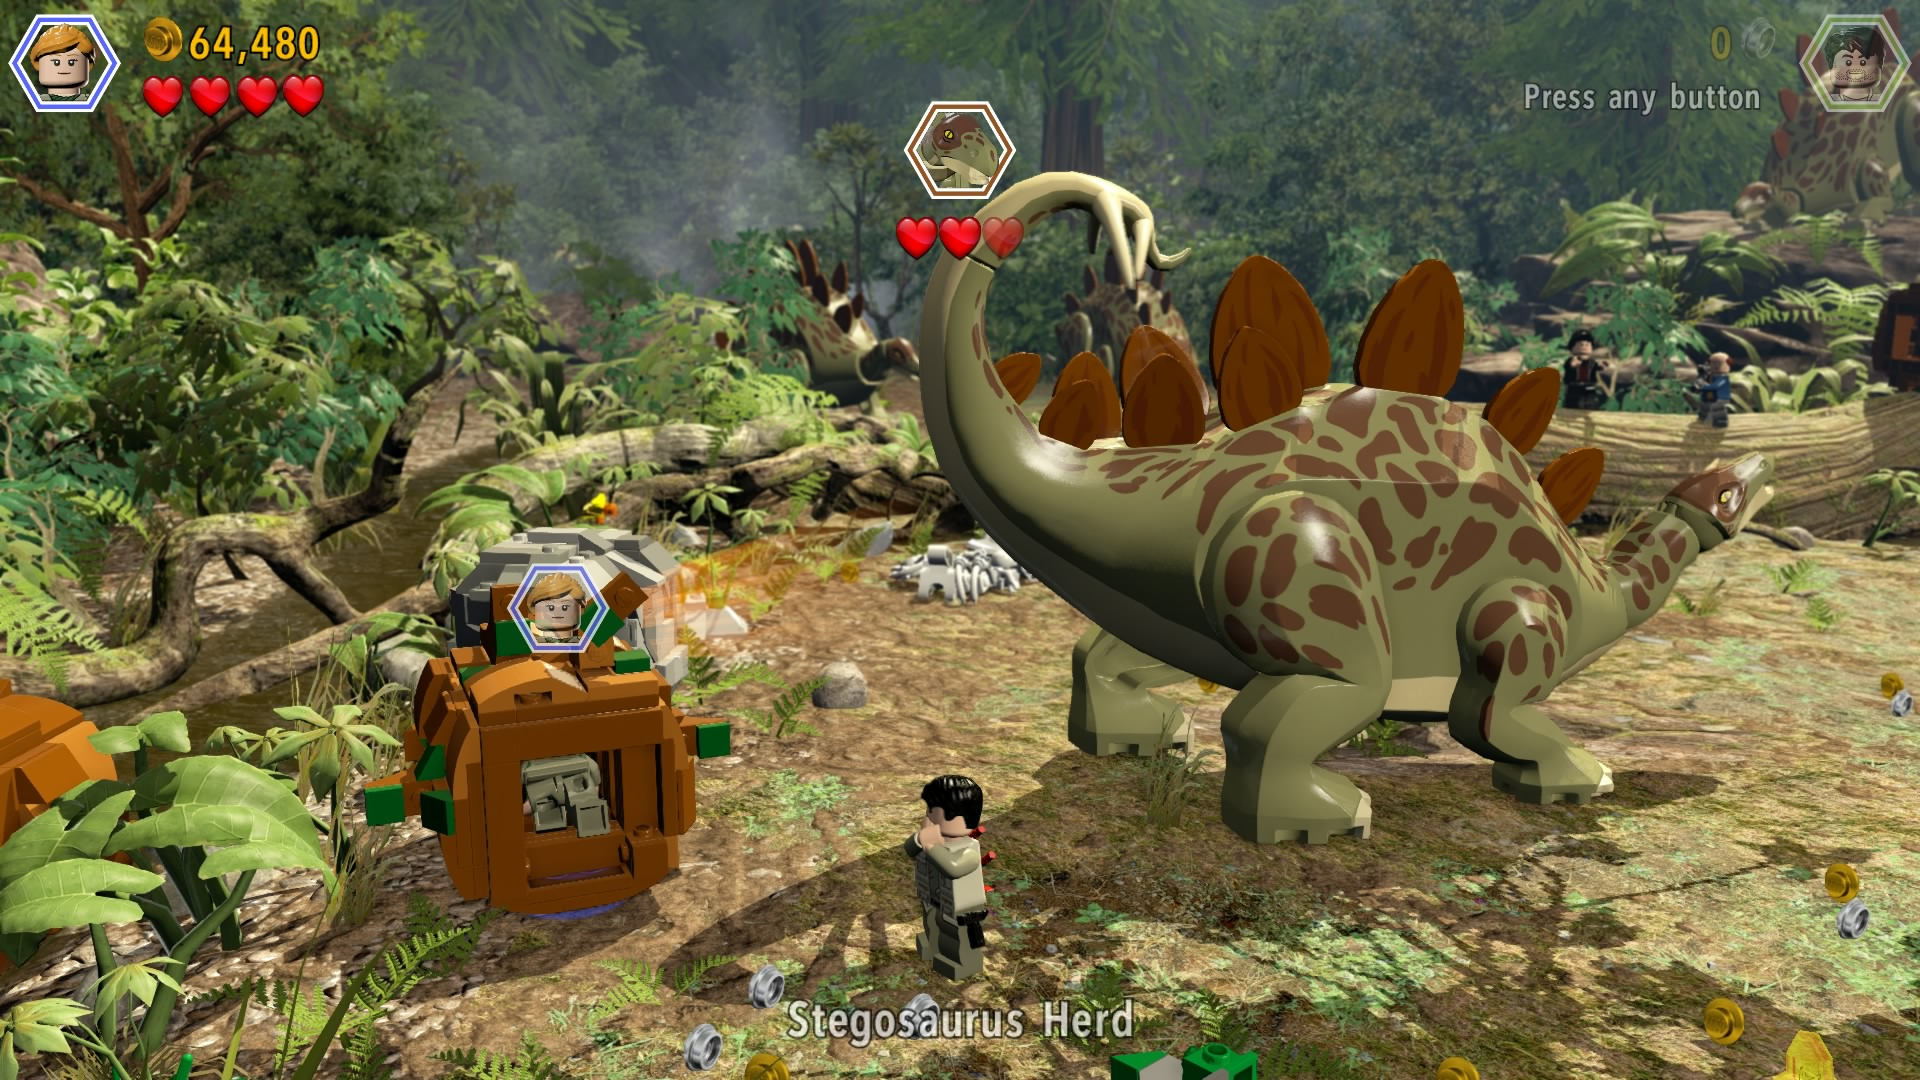 Lego jurassic world wii u 2 player